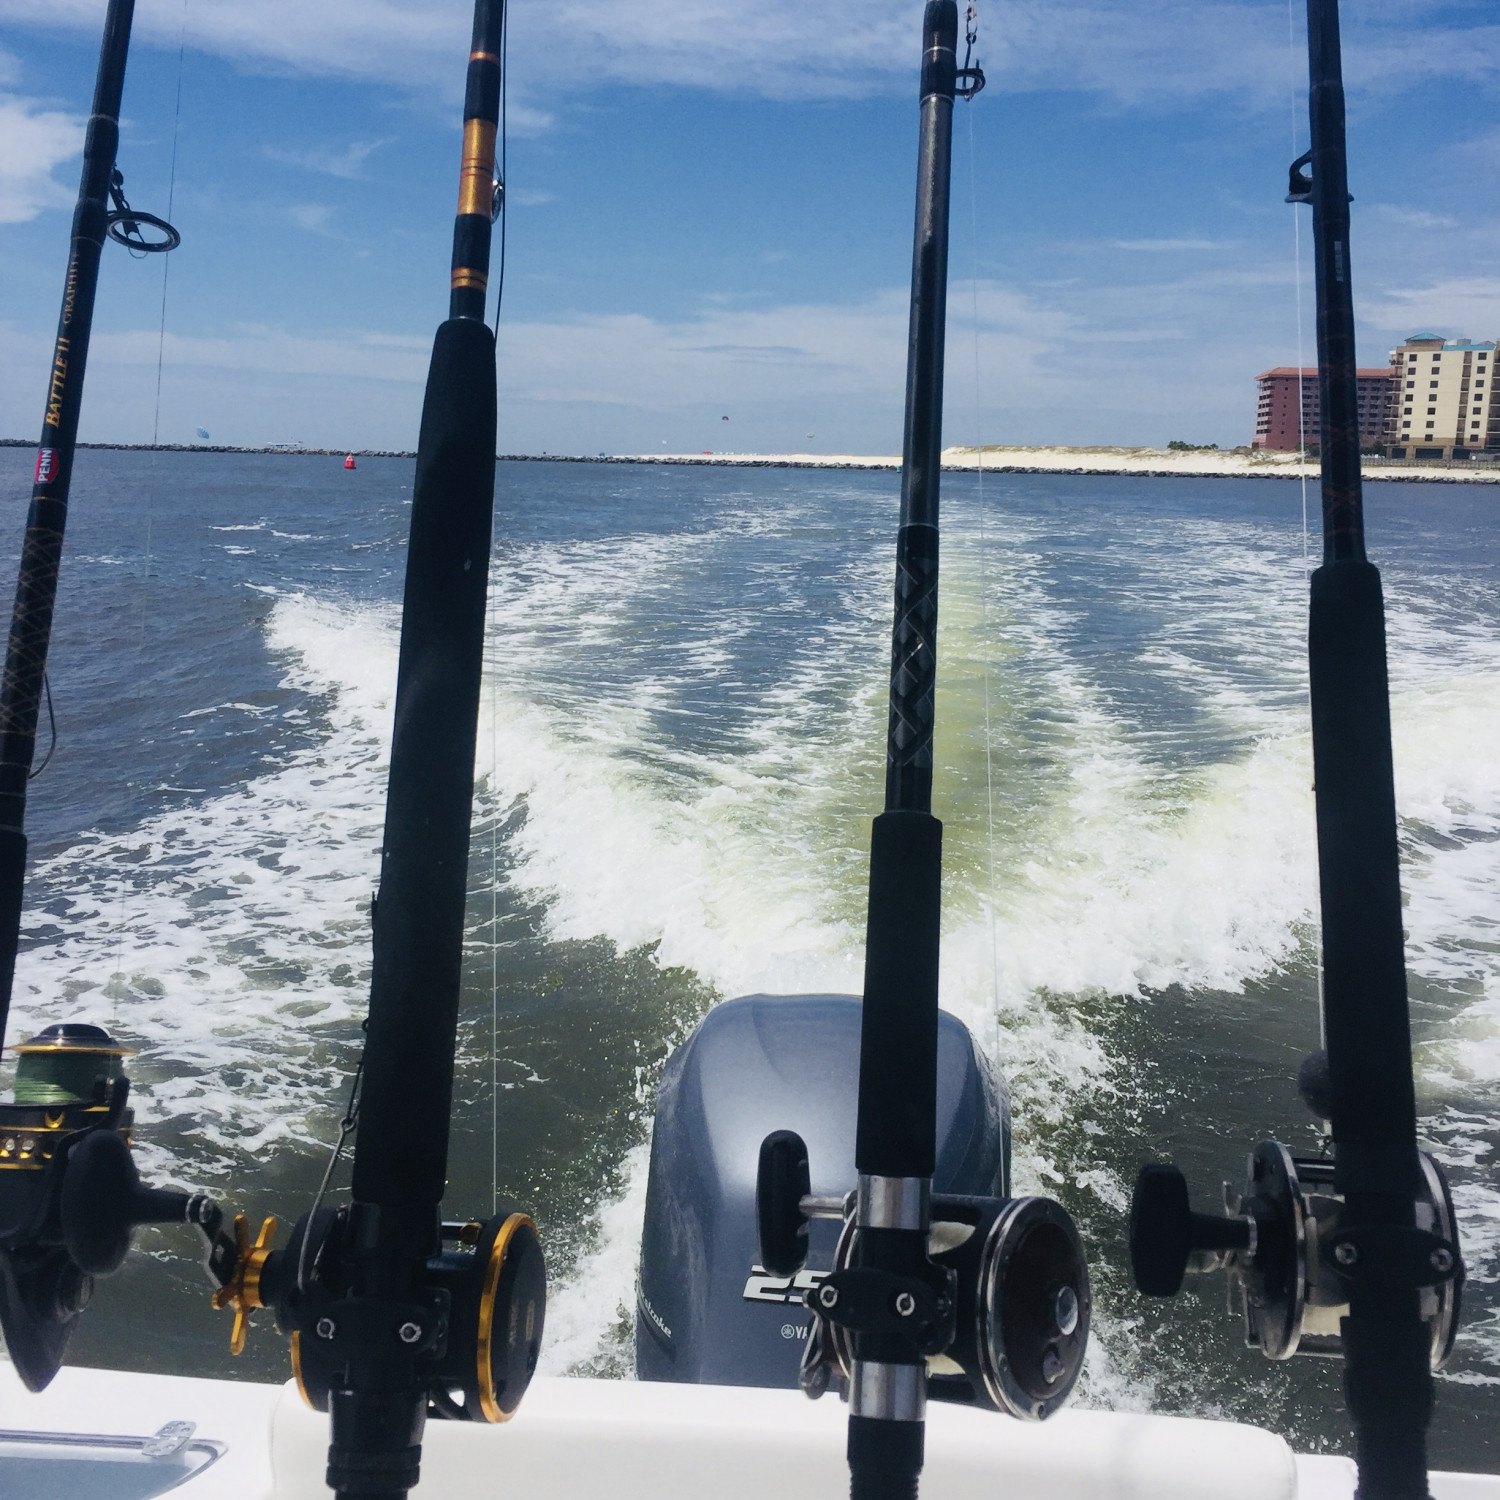 Title: Headed In - On board their Sportsman Open 232 Center Console - Location: Orange Beach, AL. Participating in the Photo Contest #SportsmanFebruary2018